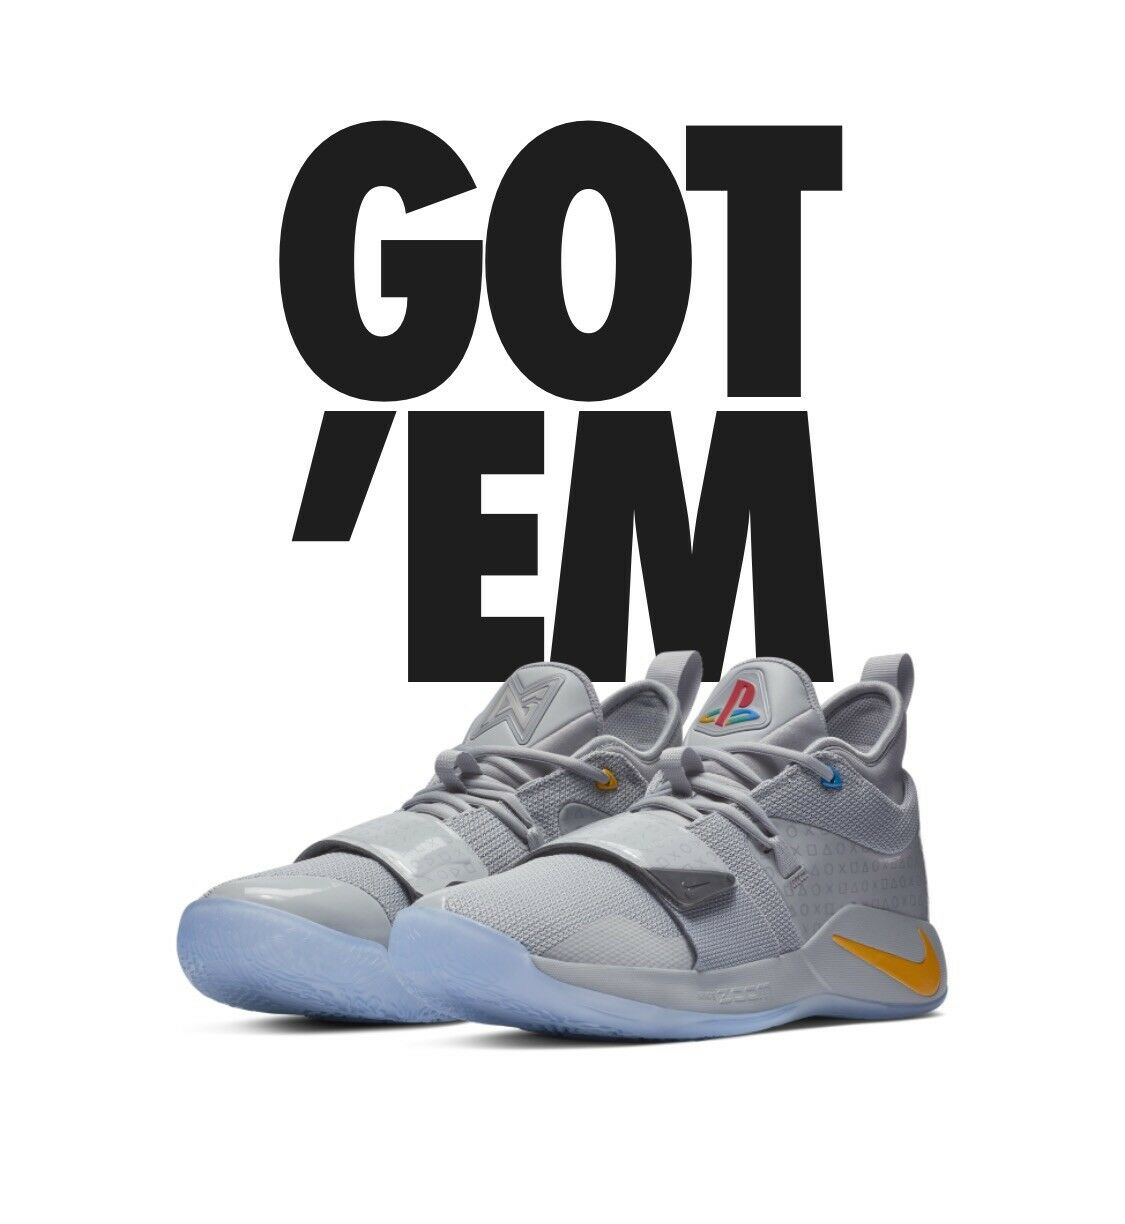 Nike PG 2.5 Playstation Sz 9.5 Wolf Grey Authentic Item Purchased At SNKRS App